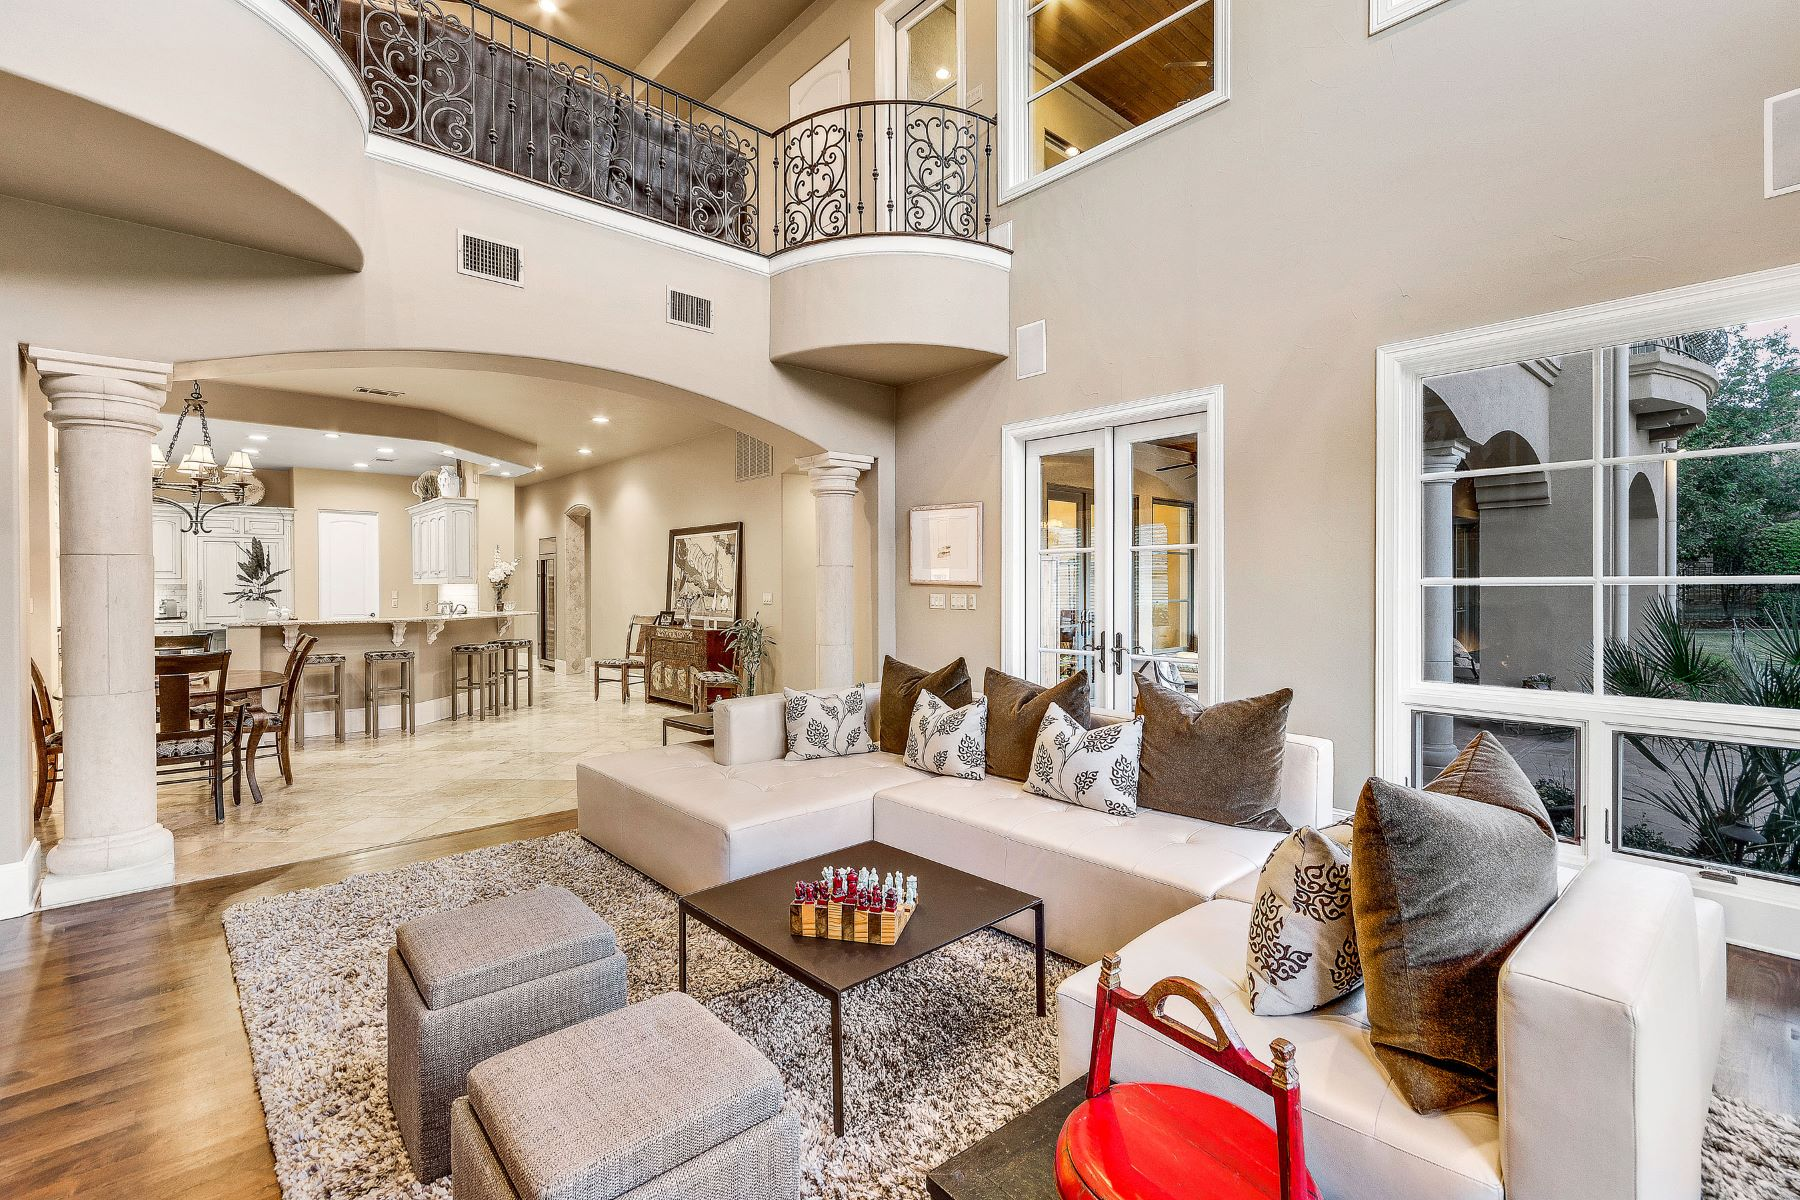 Additional photo for property listing at Sophisticated Barton Creek Estate 8416 Calera Dr Austin, Texas 78735 United States